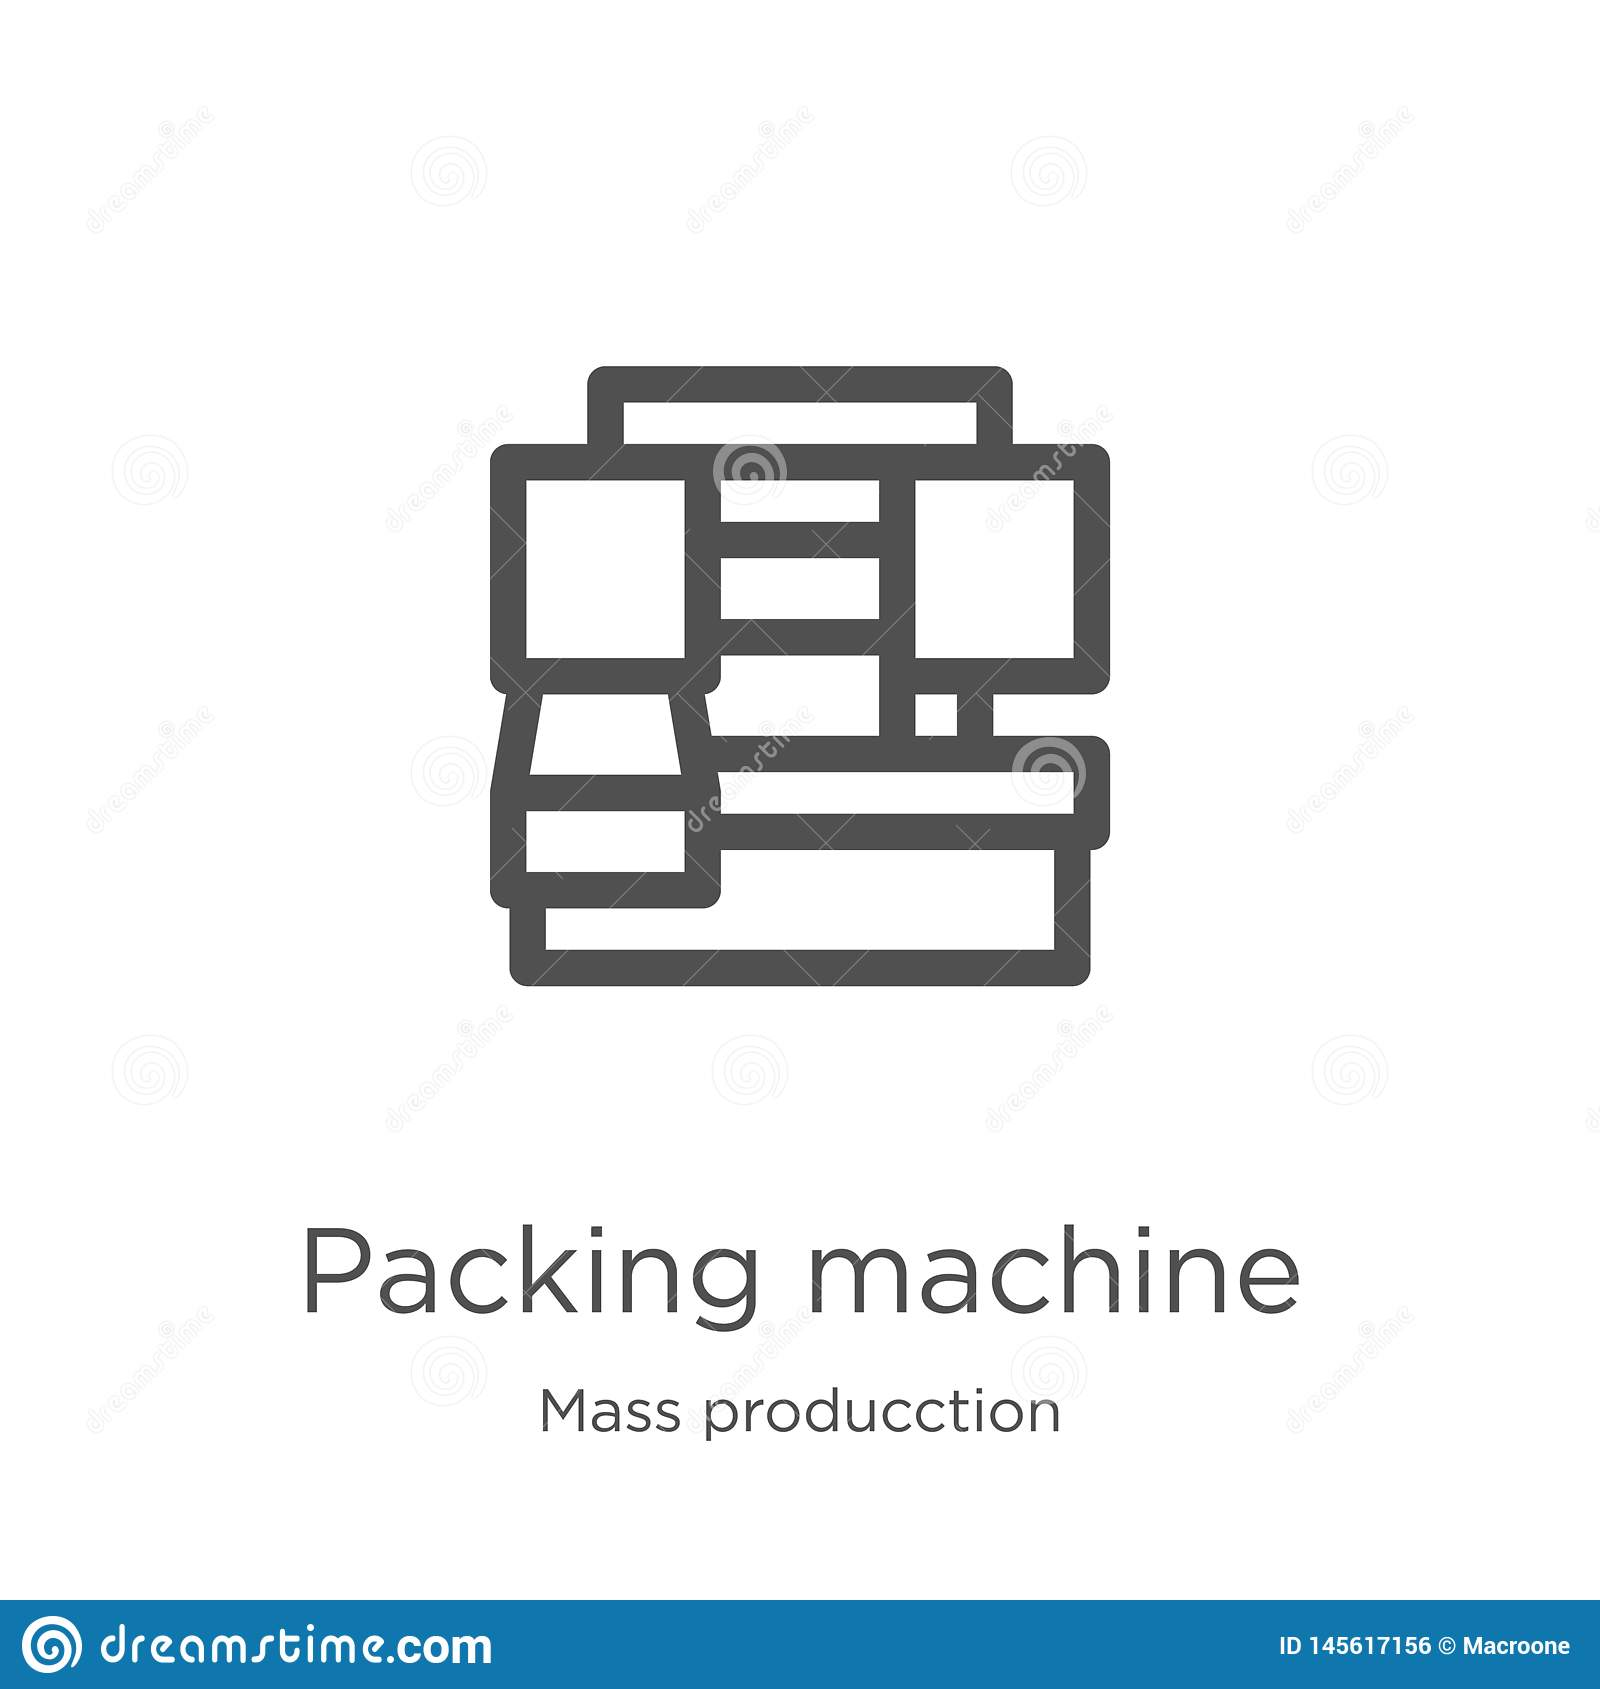 packing machine icon vector from mass producction collection. Thin line packing machine outline icon vector illustration. Outline